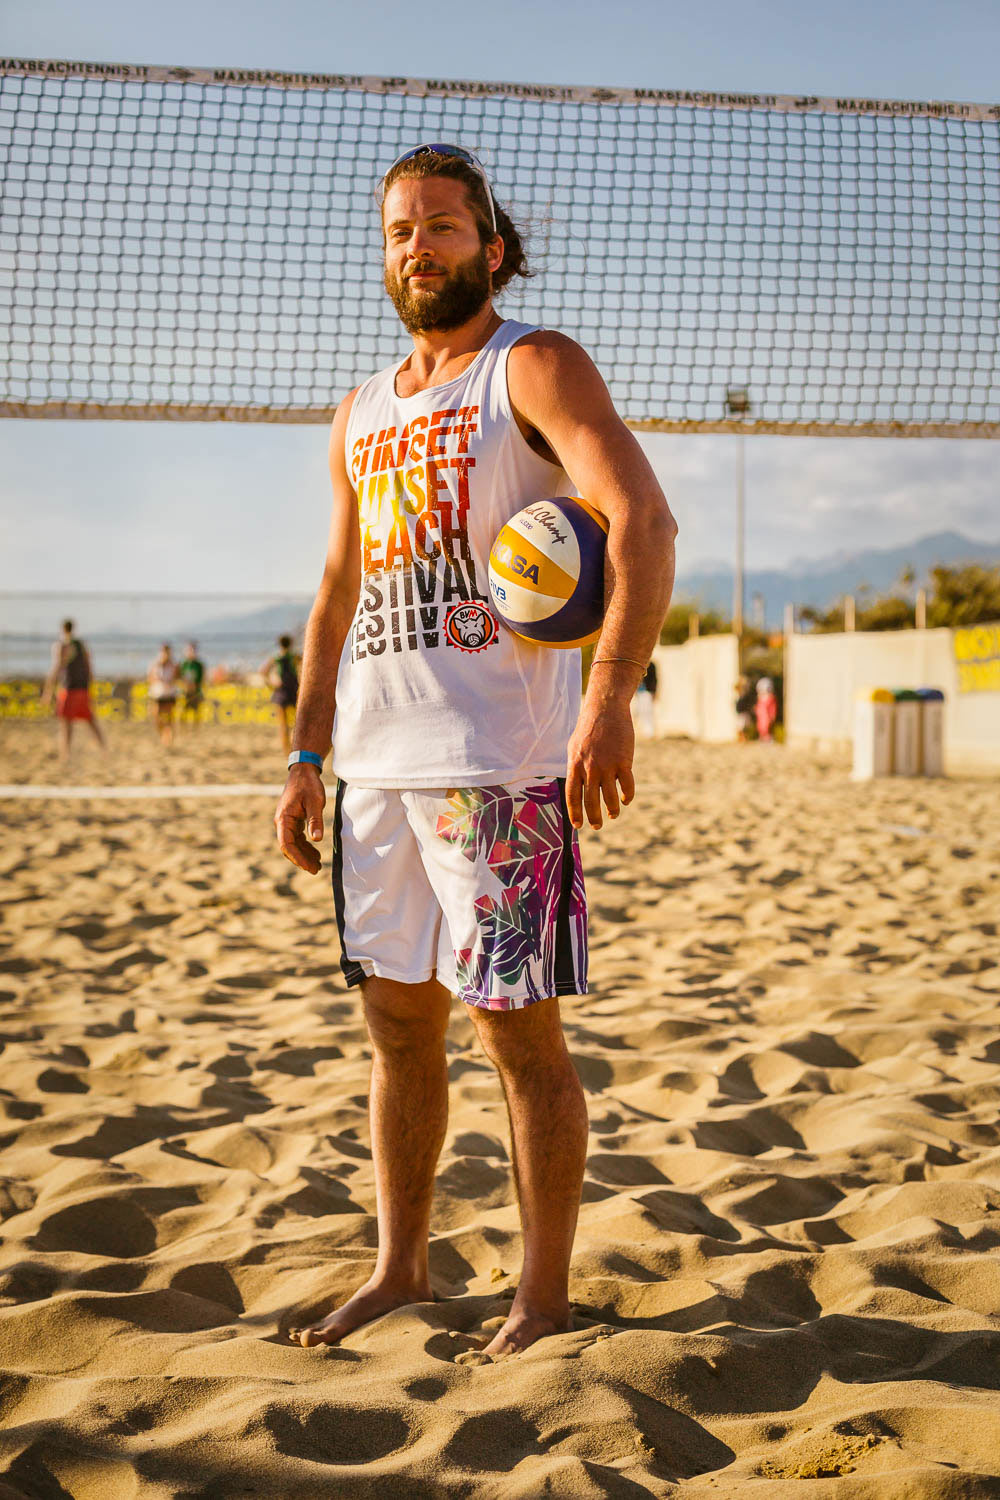 Antonio-Maccarelli-player-beach-volley